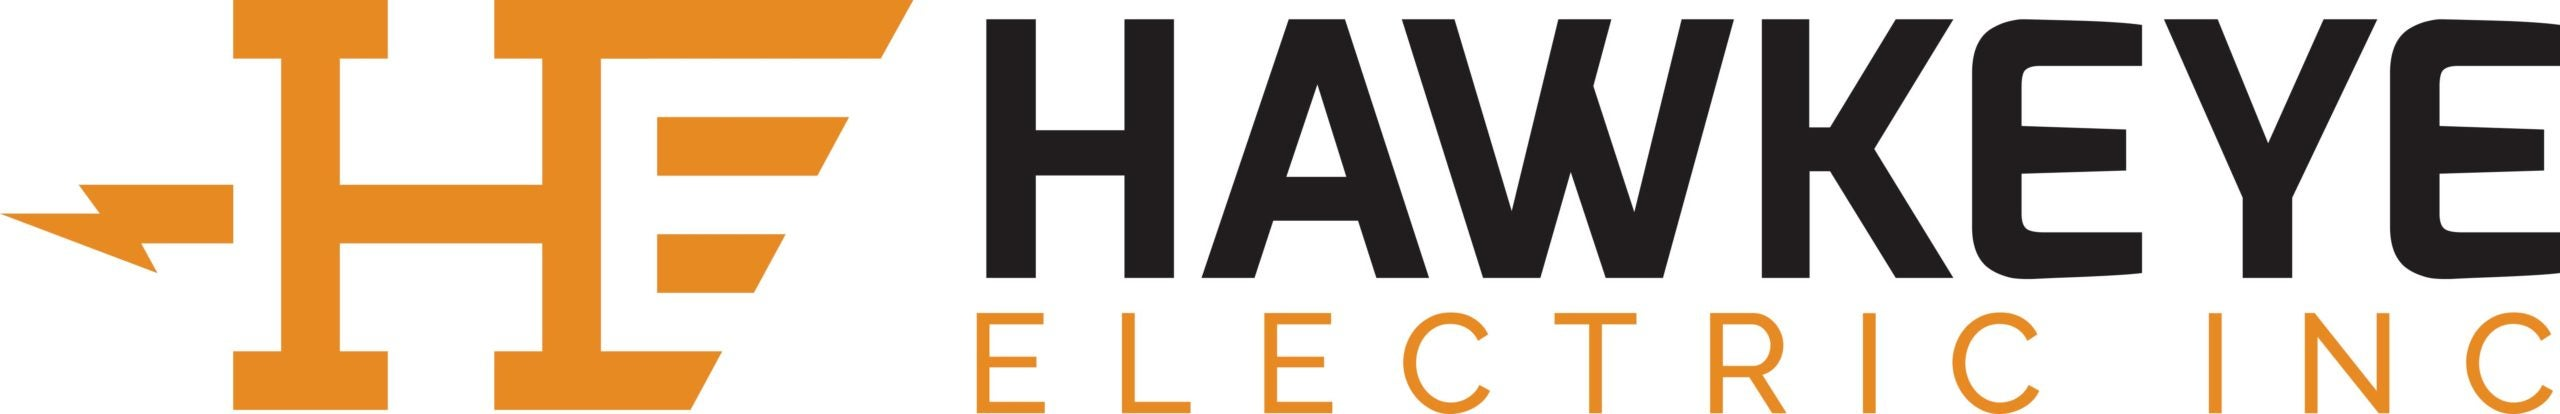 Hawkeye Electric Inc